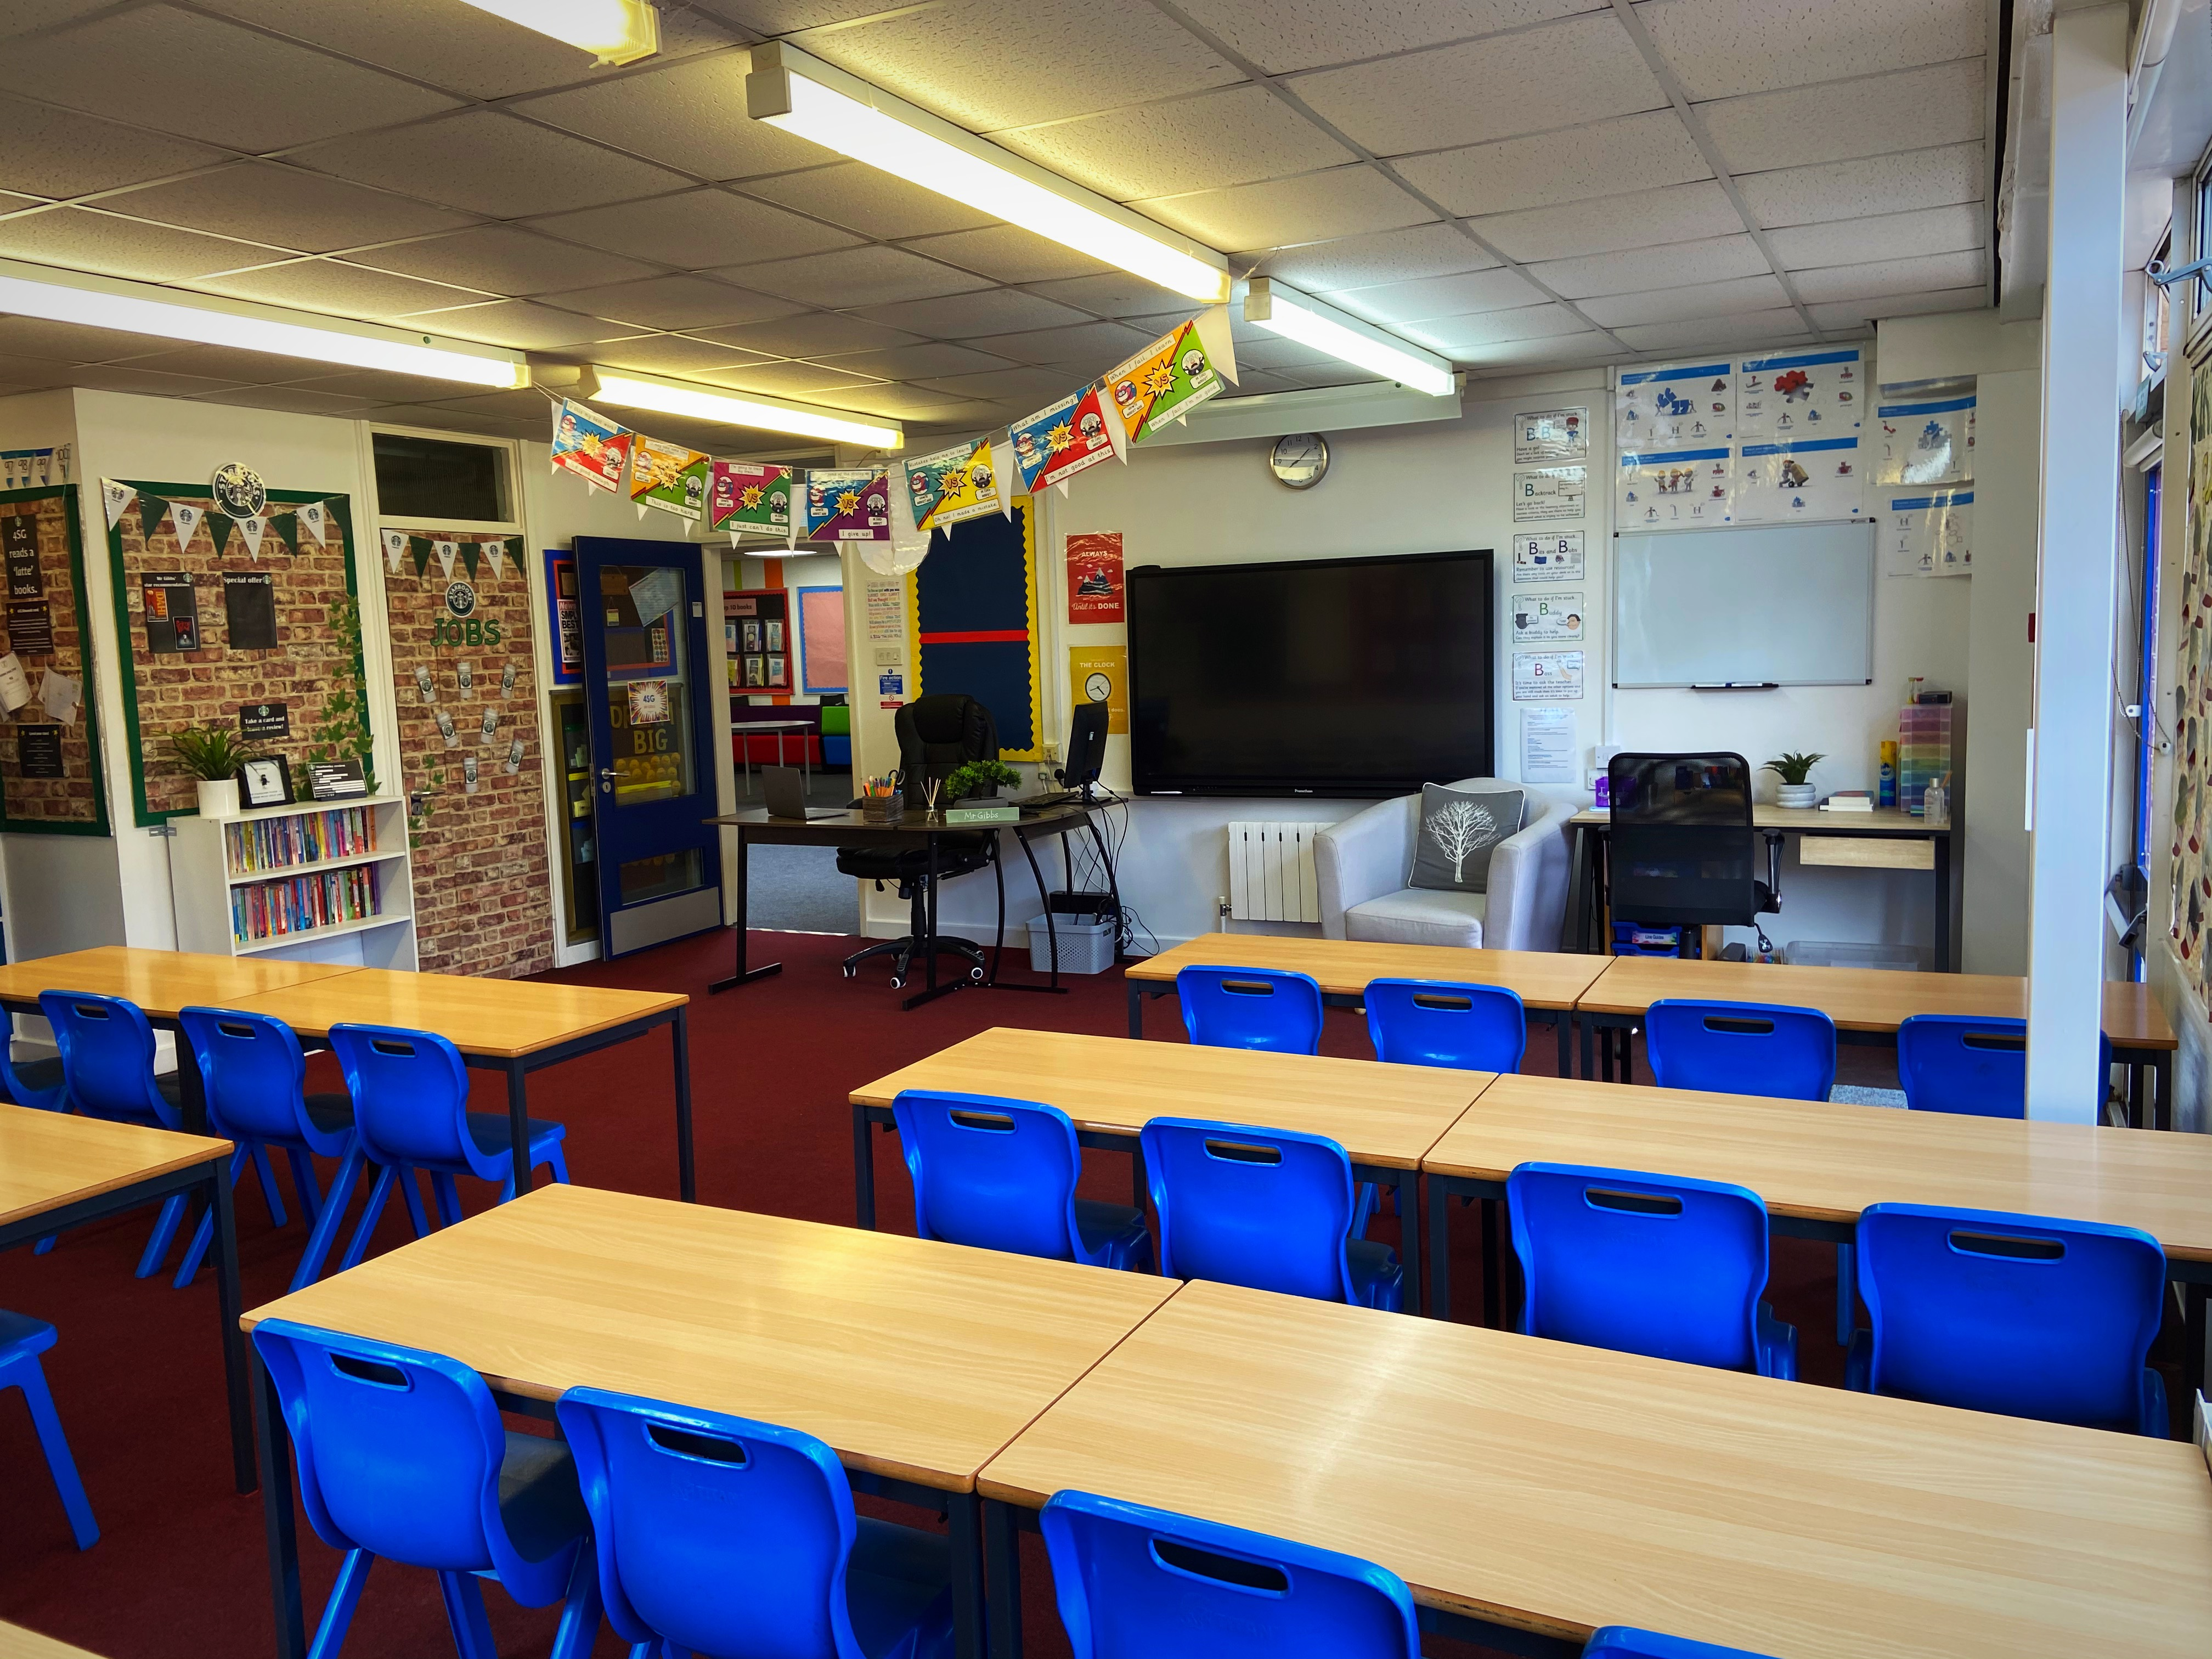 Engaging and bright classrooms